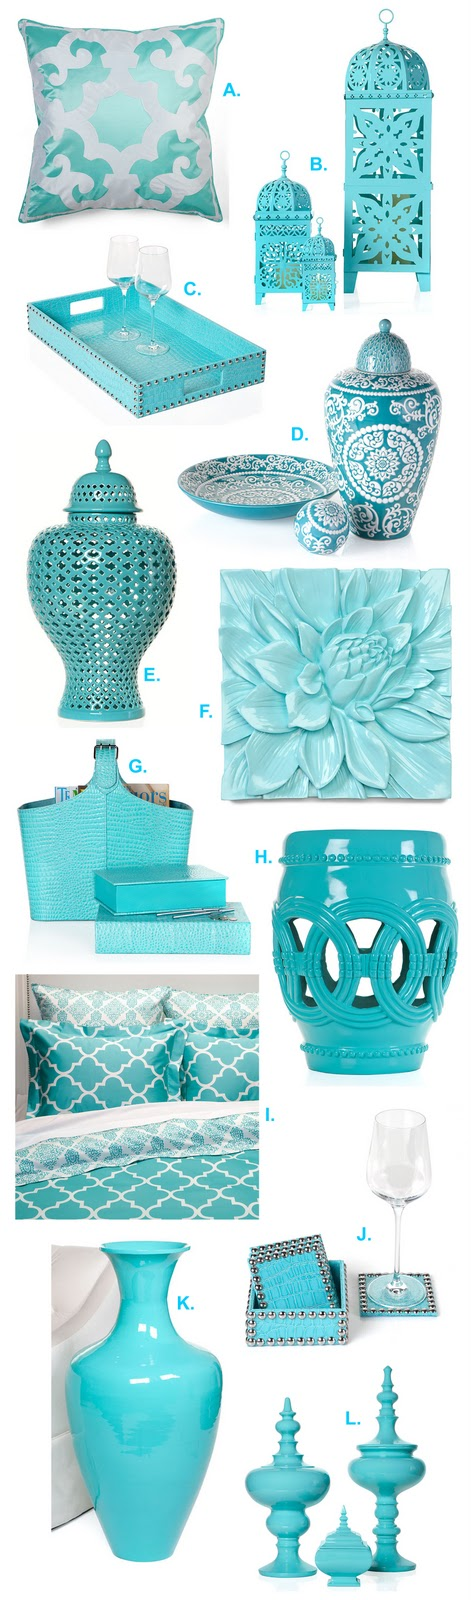 A designer a contractor a for aquamarine for Aqua colored bathroom accessories